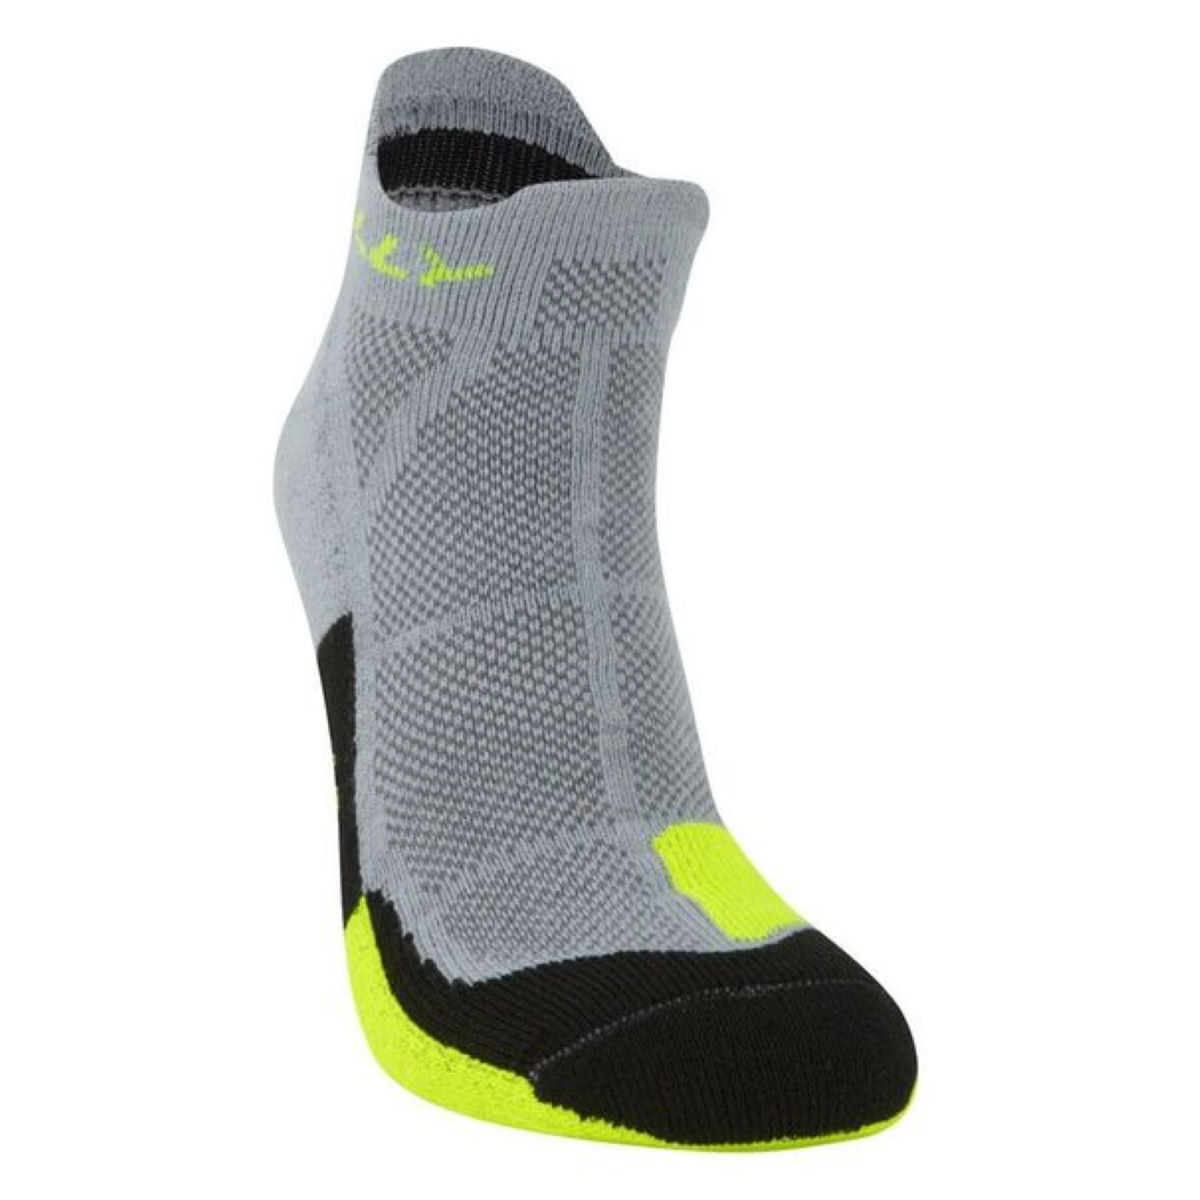 Hilly Cushion Socklet - S Grey/fluoyellow/blk   Socks